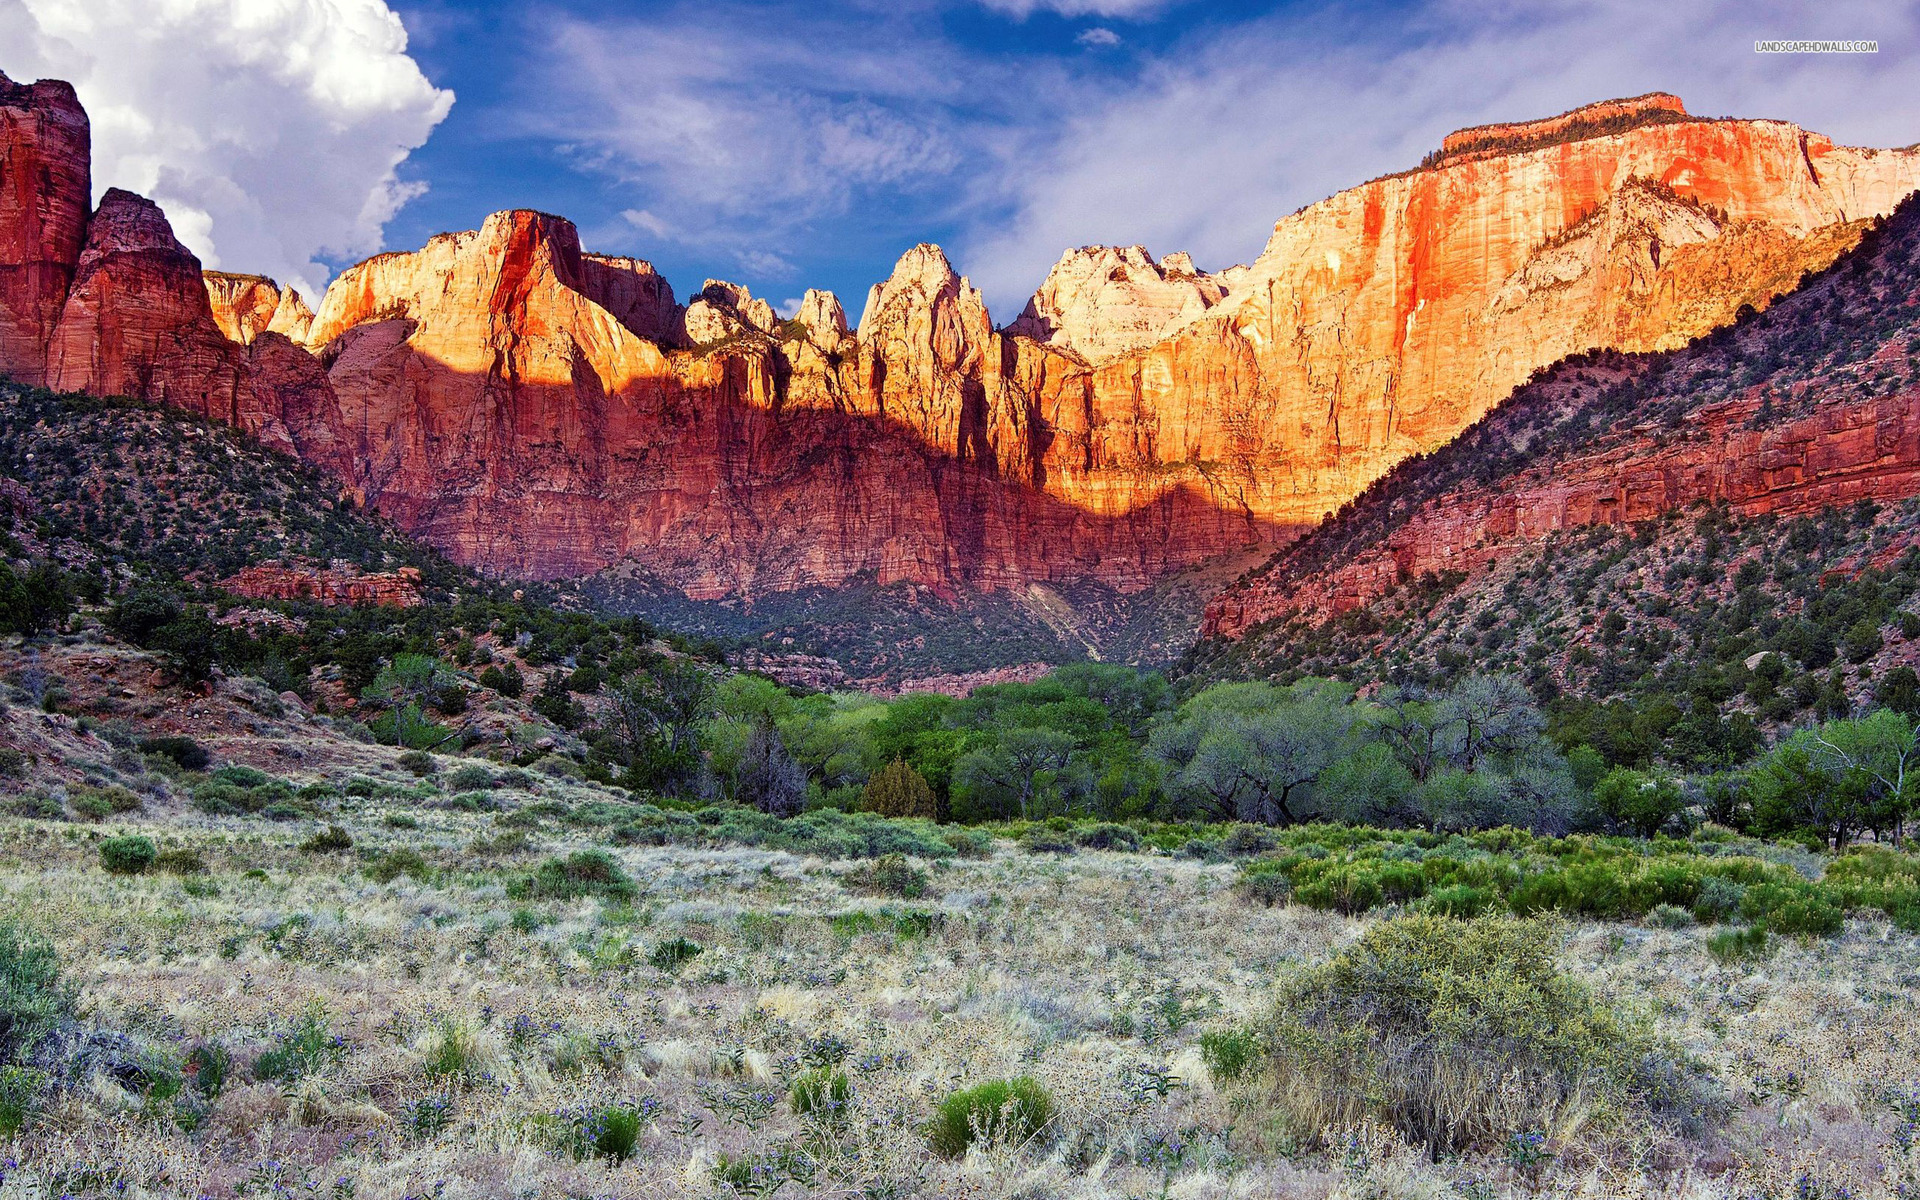 Rustic Fall Desktop Wallpaper Amazing Zion National Park Wallpapers Amazing Zion